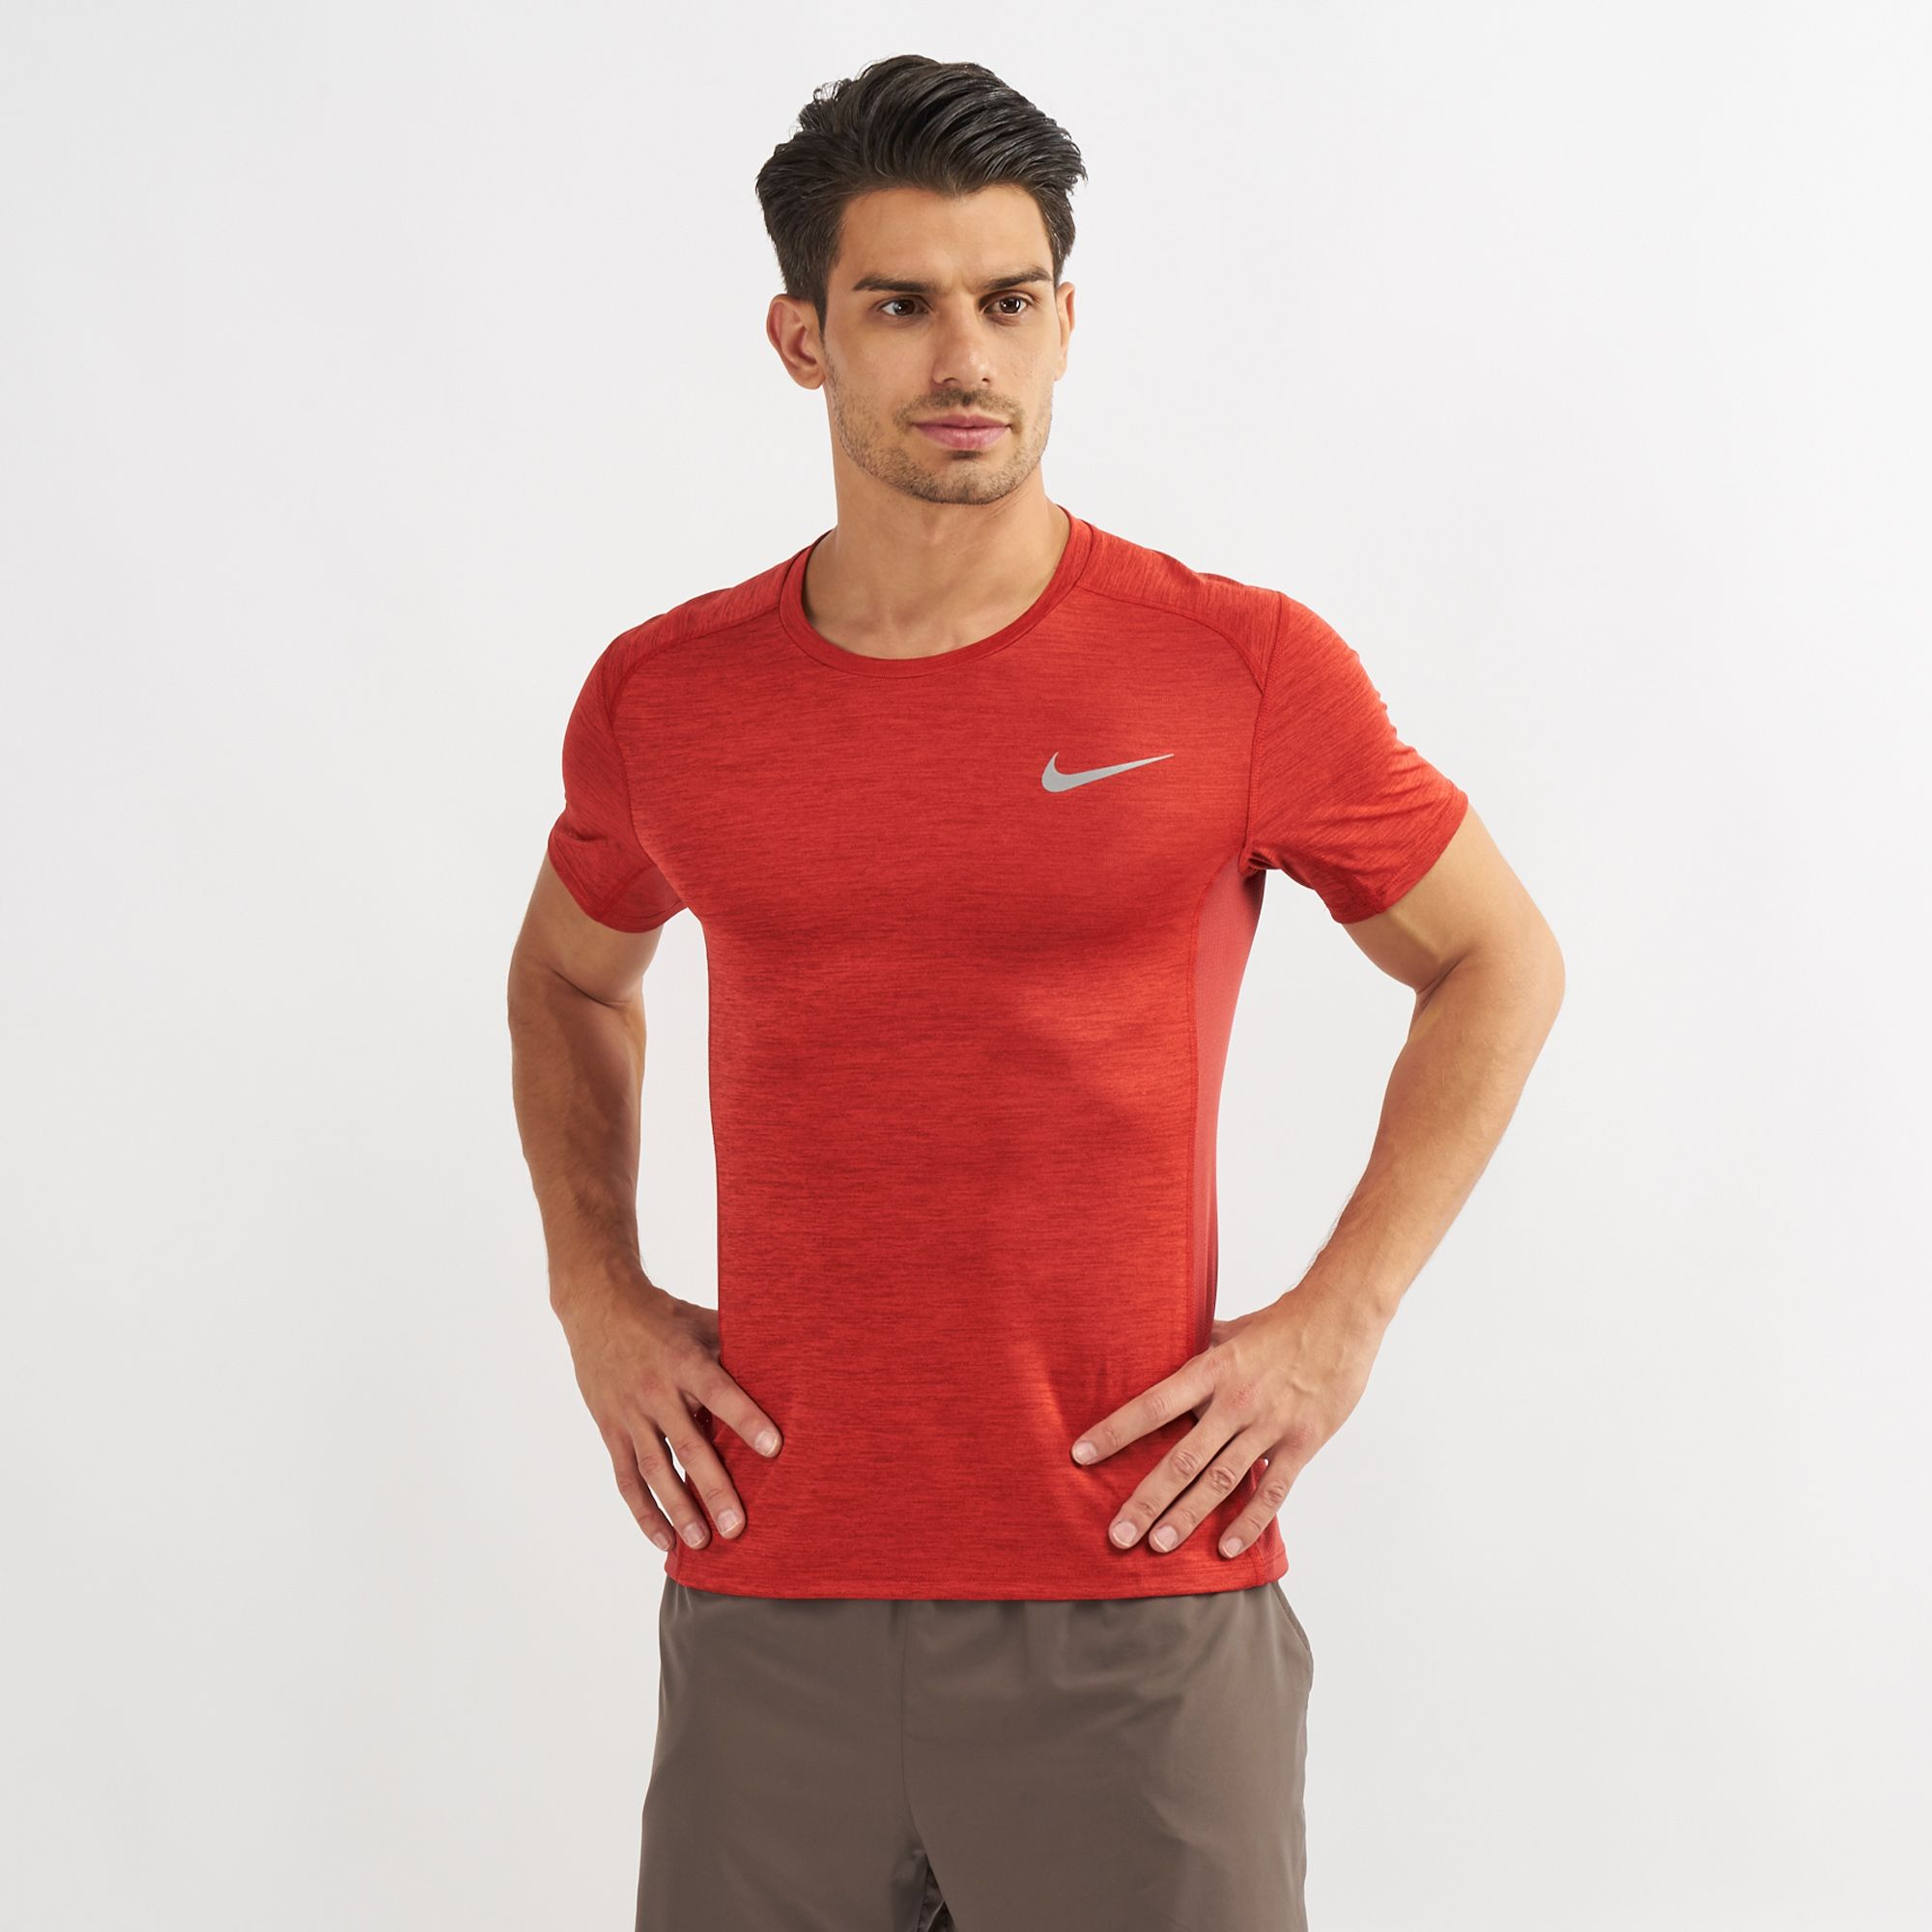 021669c17b1e3 Nike Dri-FIT Miler T-Shirt | T-Shirts | Tops | Clothing | Mens | SSS